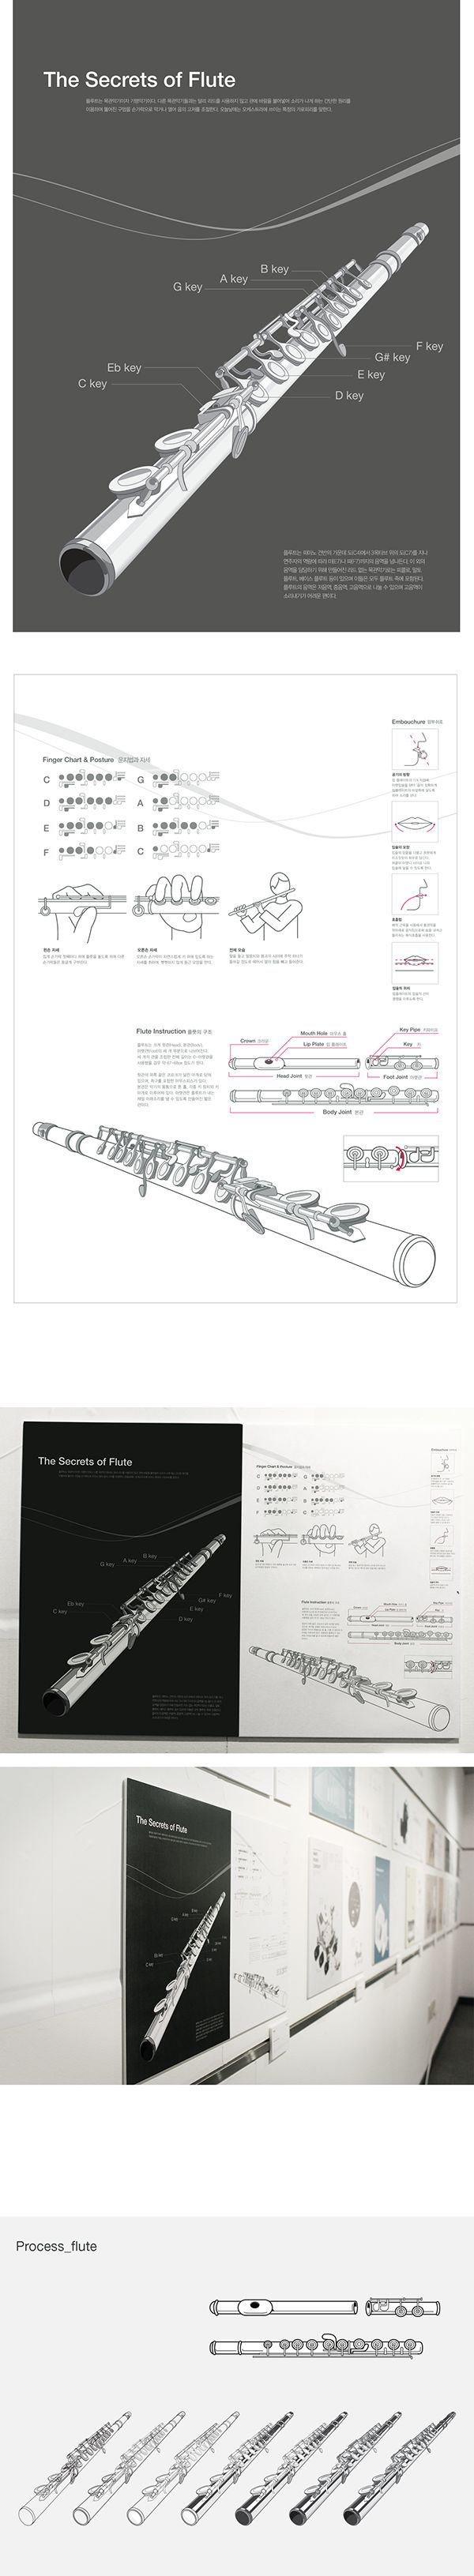 The Secrets of Flute on Behance. It is flute instruction manual. It contains the name of flute parts, Embouchure and Finger chart.